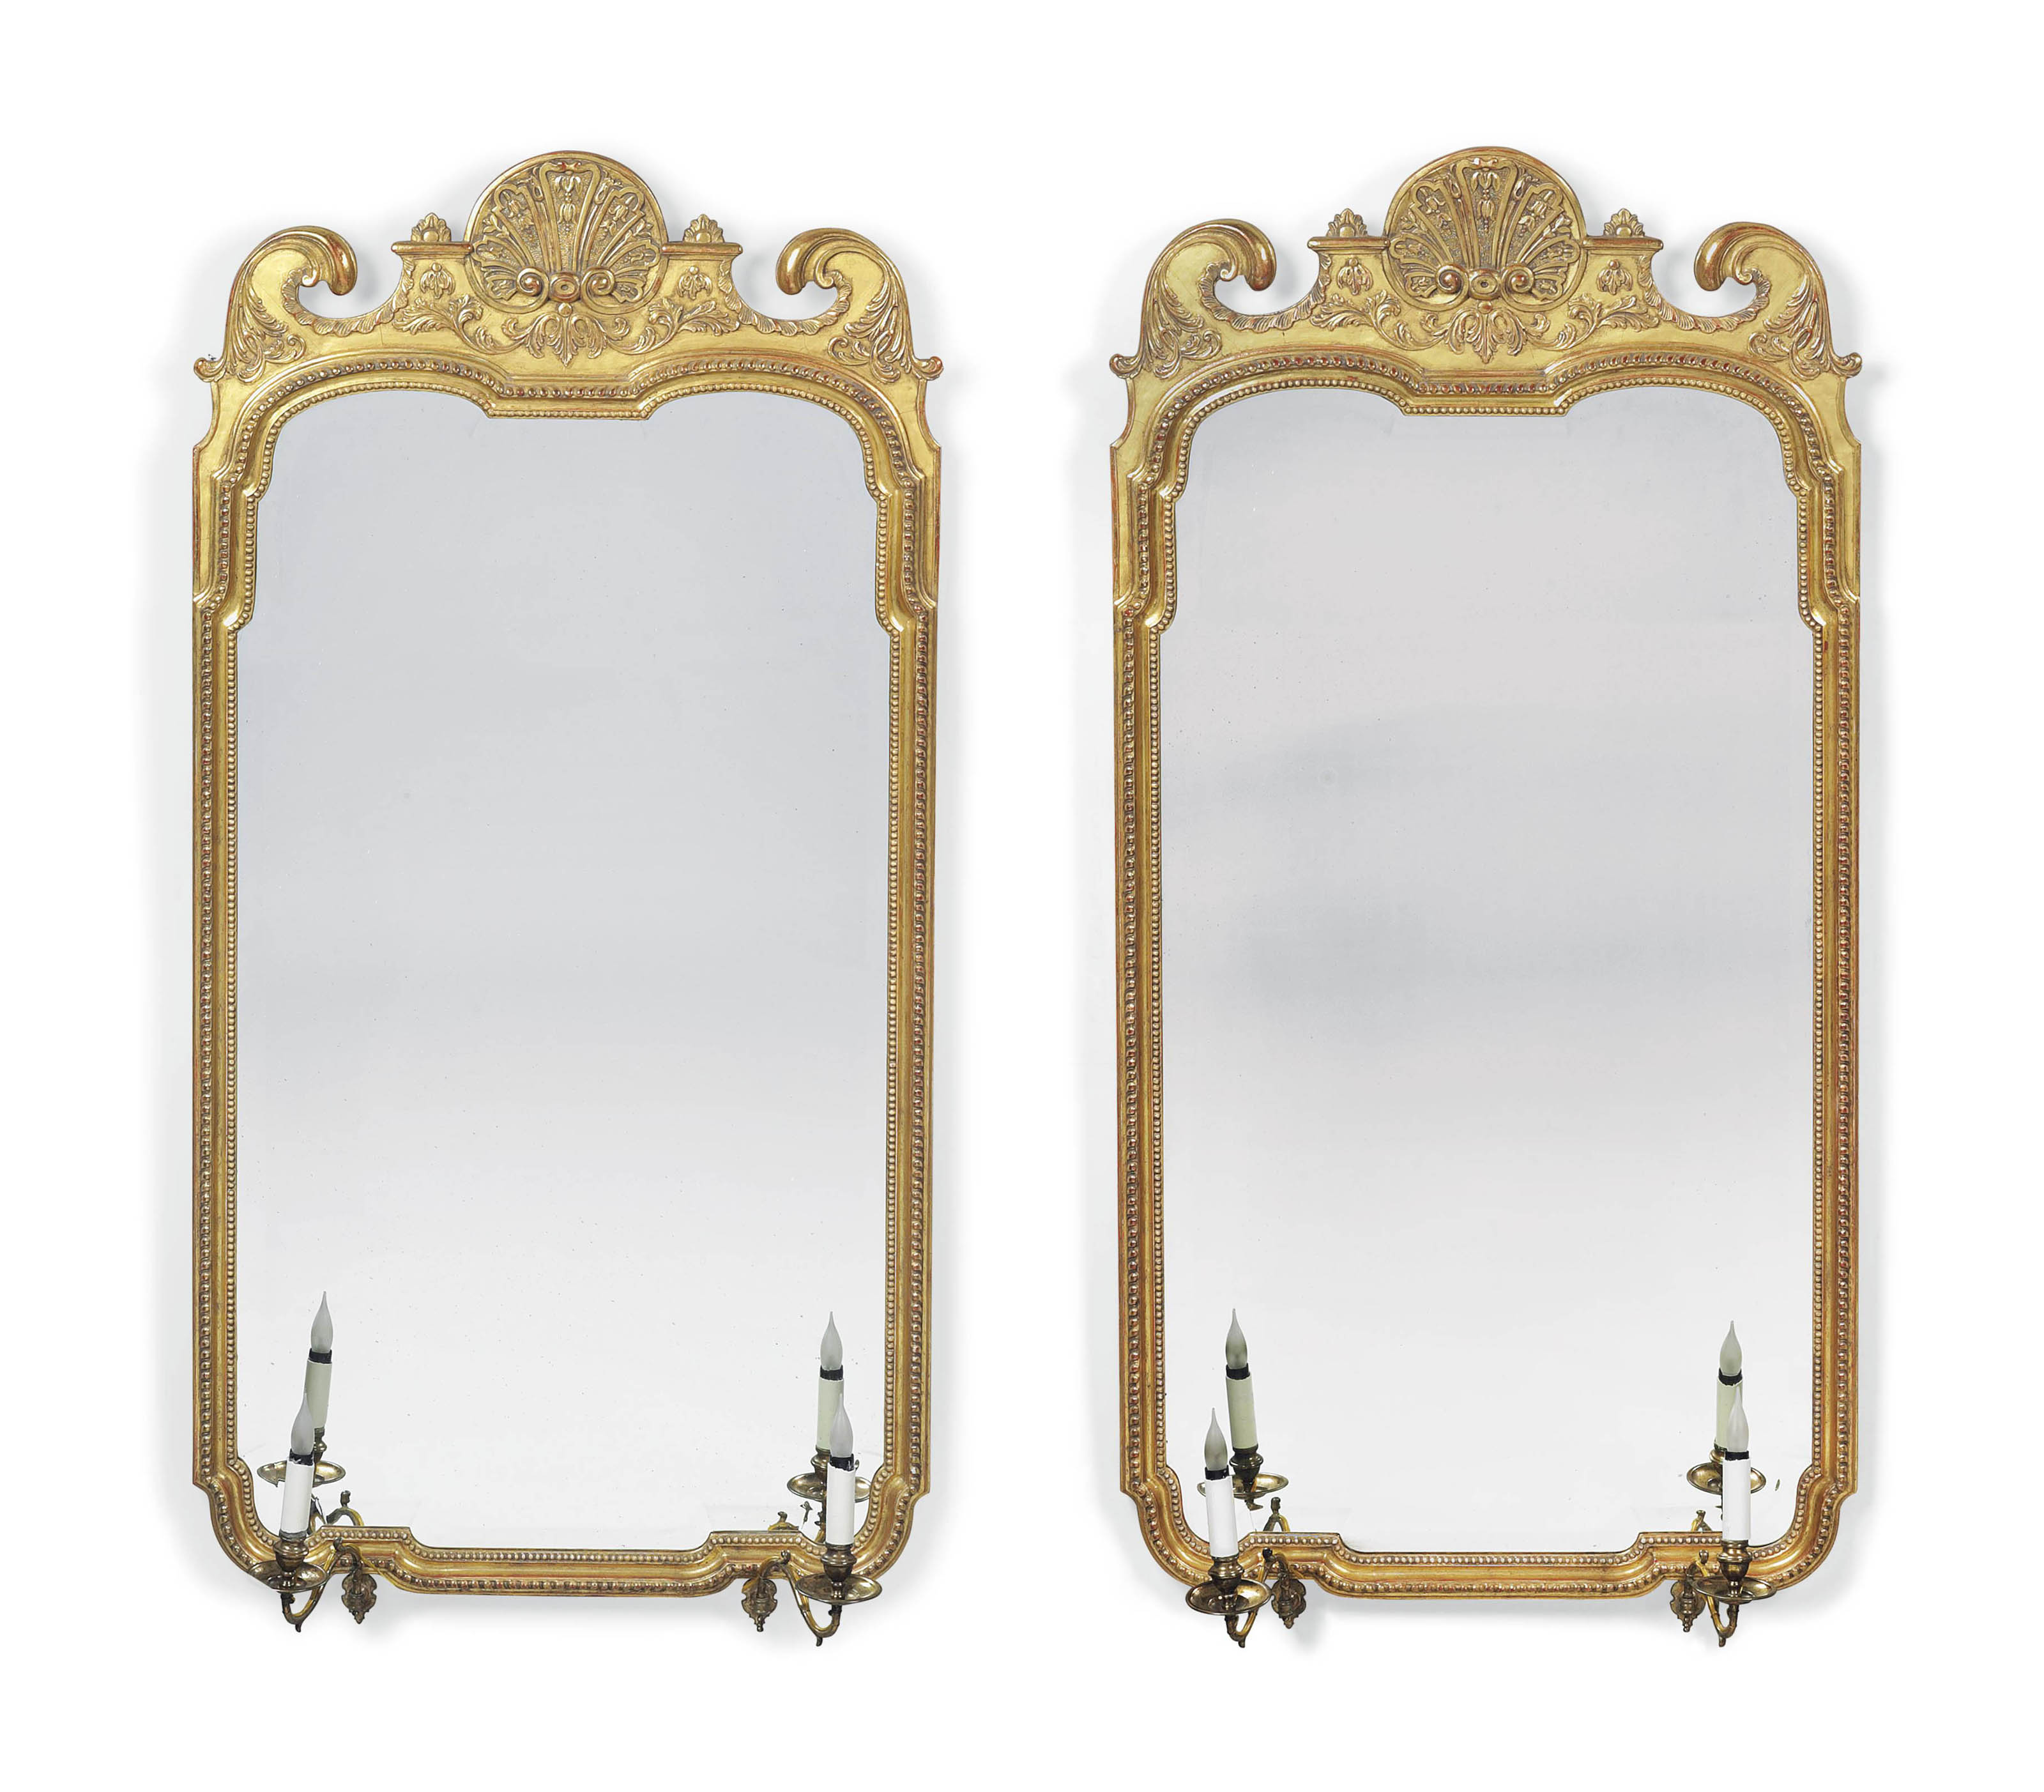 A LARGE PAIR OF GILTWOOD AND G